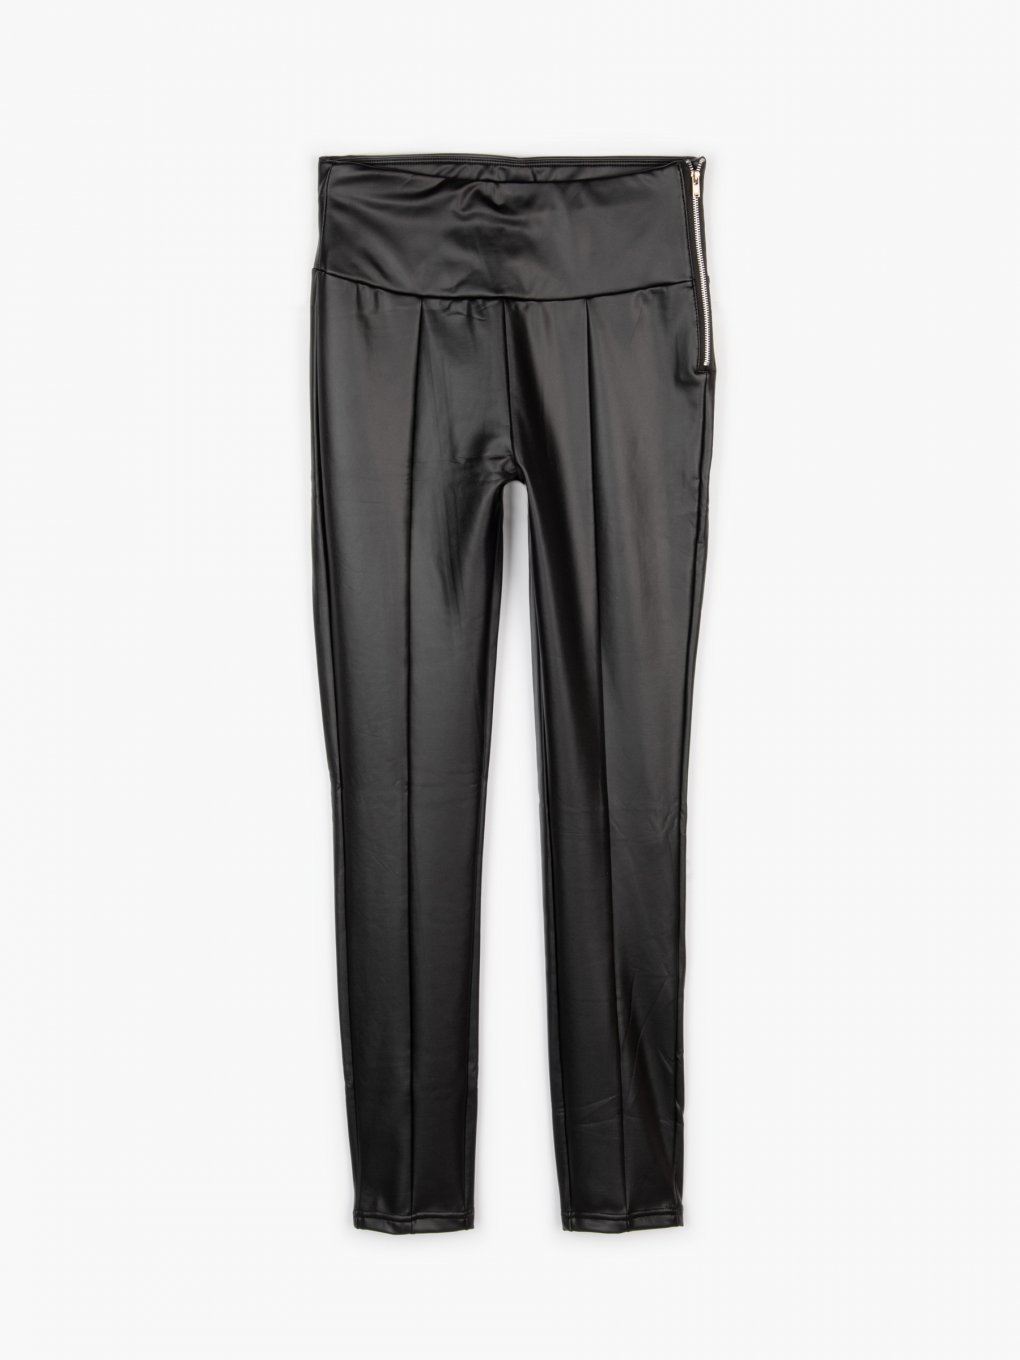 Faux leather warm jeggings